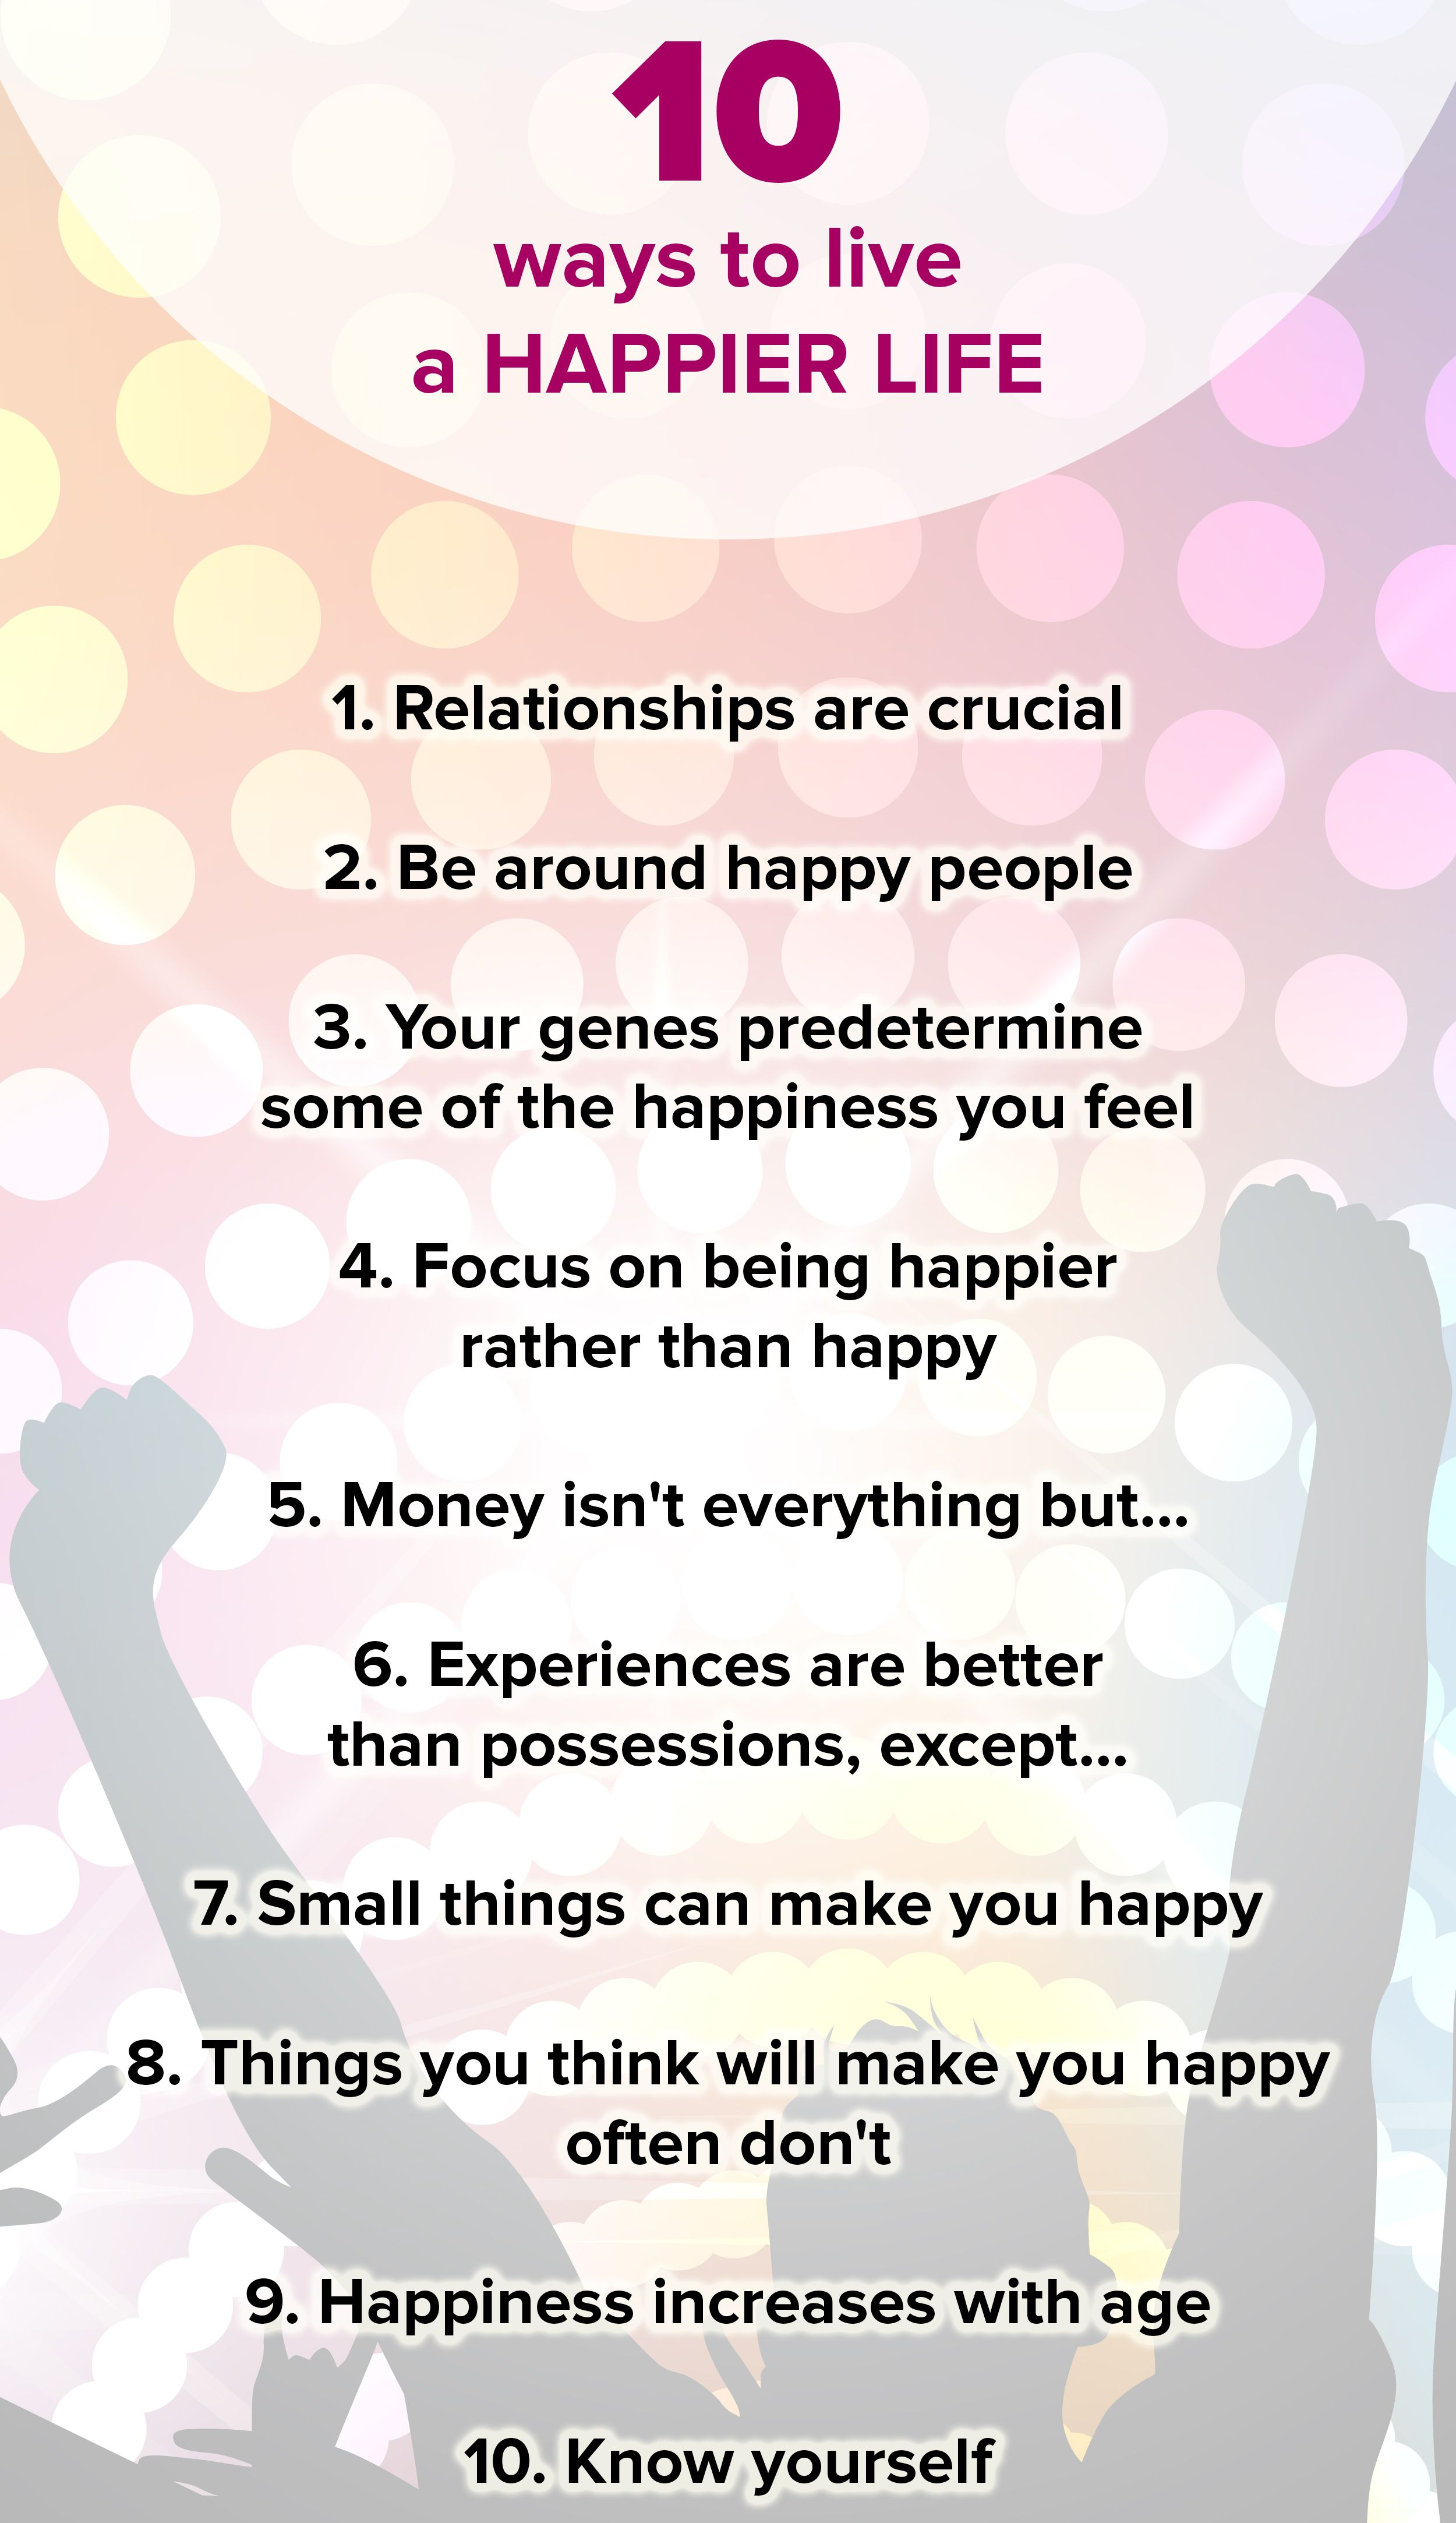 10 basic rules for a happier life — and most of them surprised us